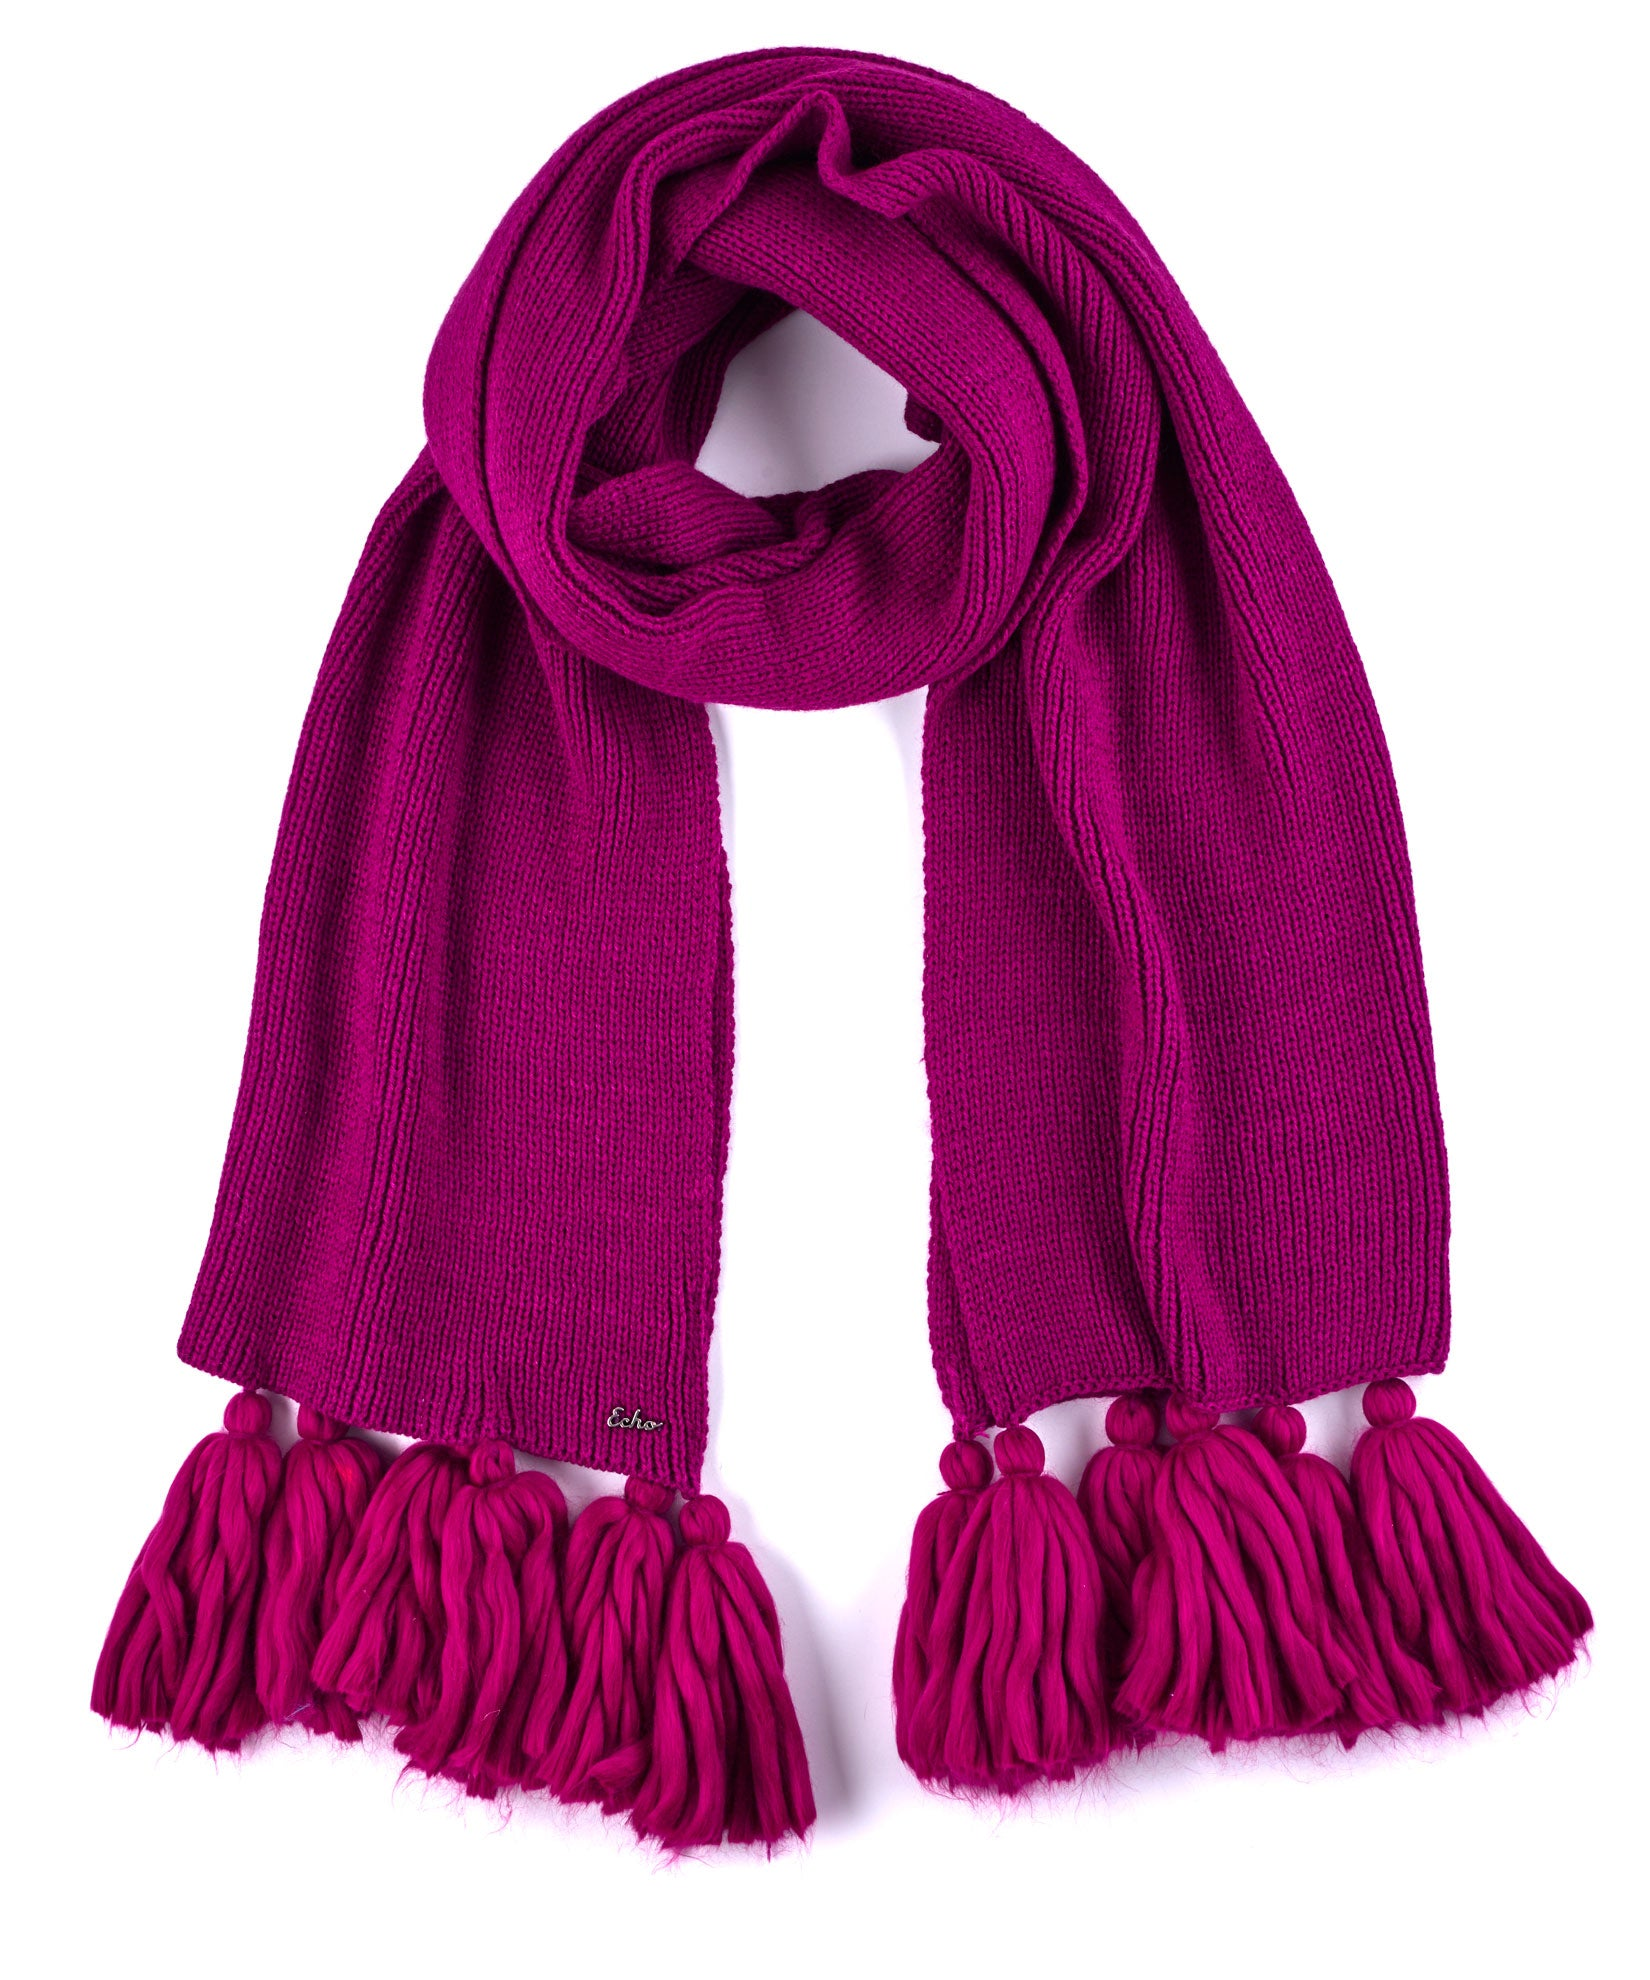 Indian Rose - Maxi Tassel Muffler